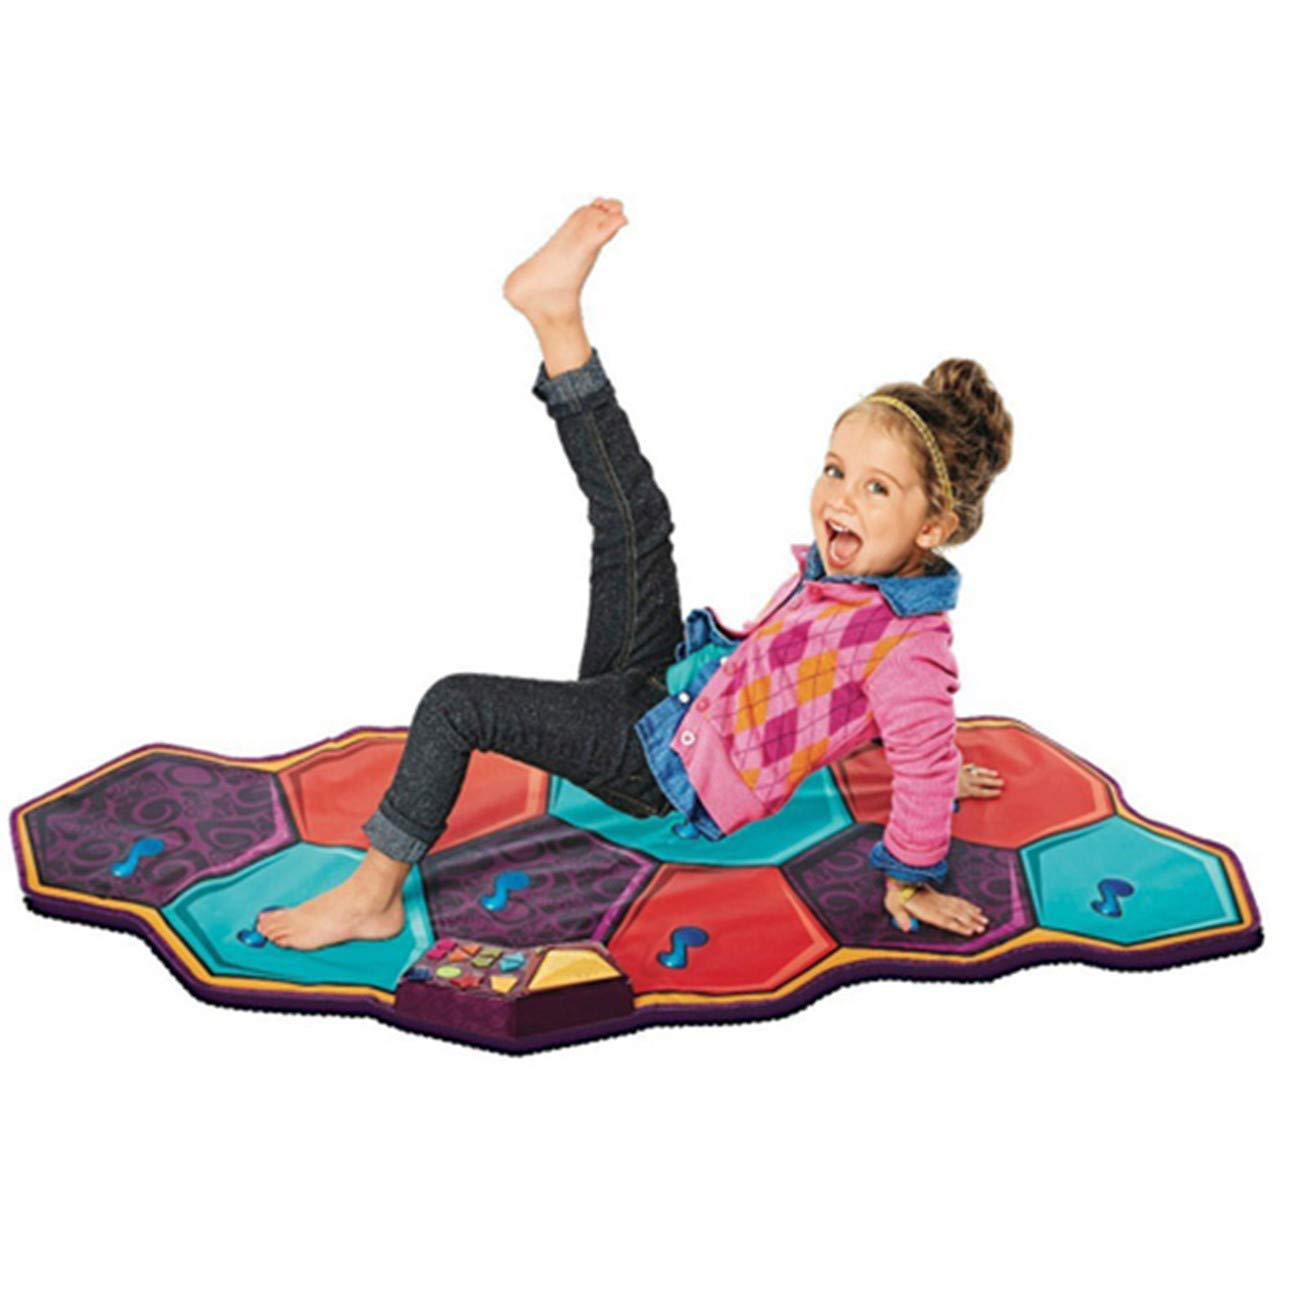 Dance mat children's game blanket sports hot dance children crawling mat music dance blanket by Shwk (Image #1)